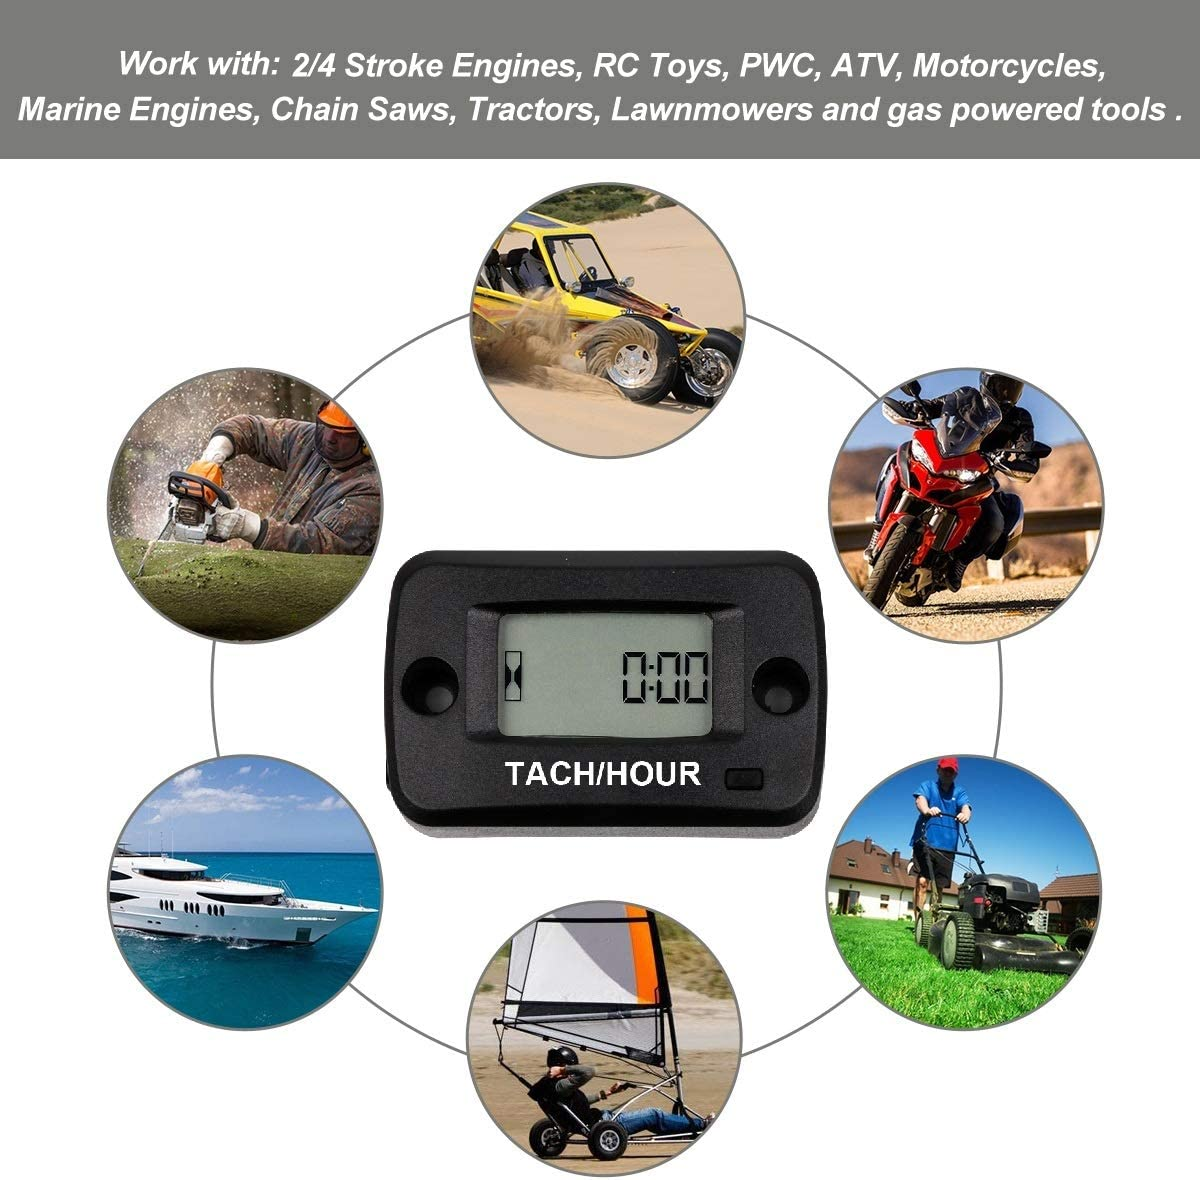 SEARON Inductive Digital Engine Hour Meter for Boat Yama Ski Dirt Quad Dirt Bike Marine ATV Motorcycle Snowmobile Small Engine Generator Tach Hour Meter